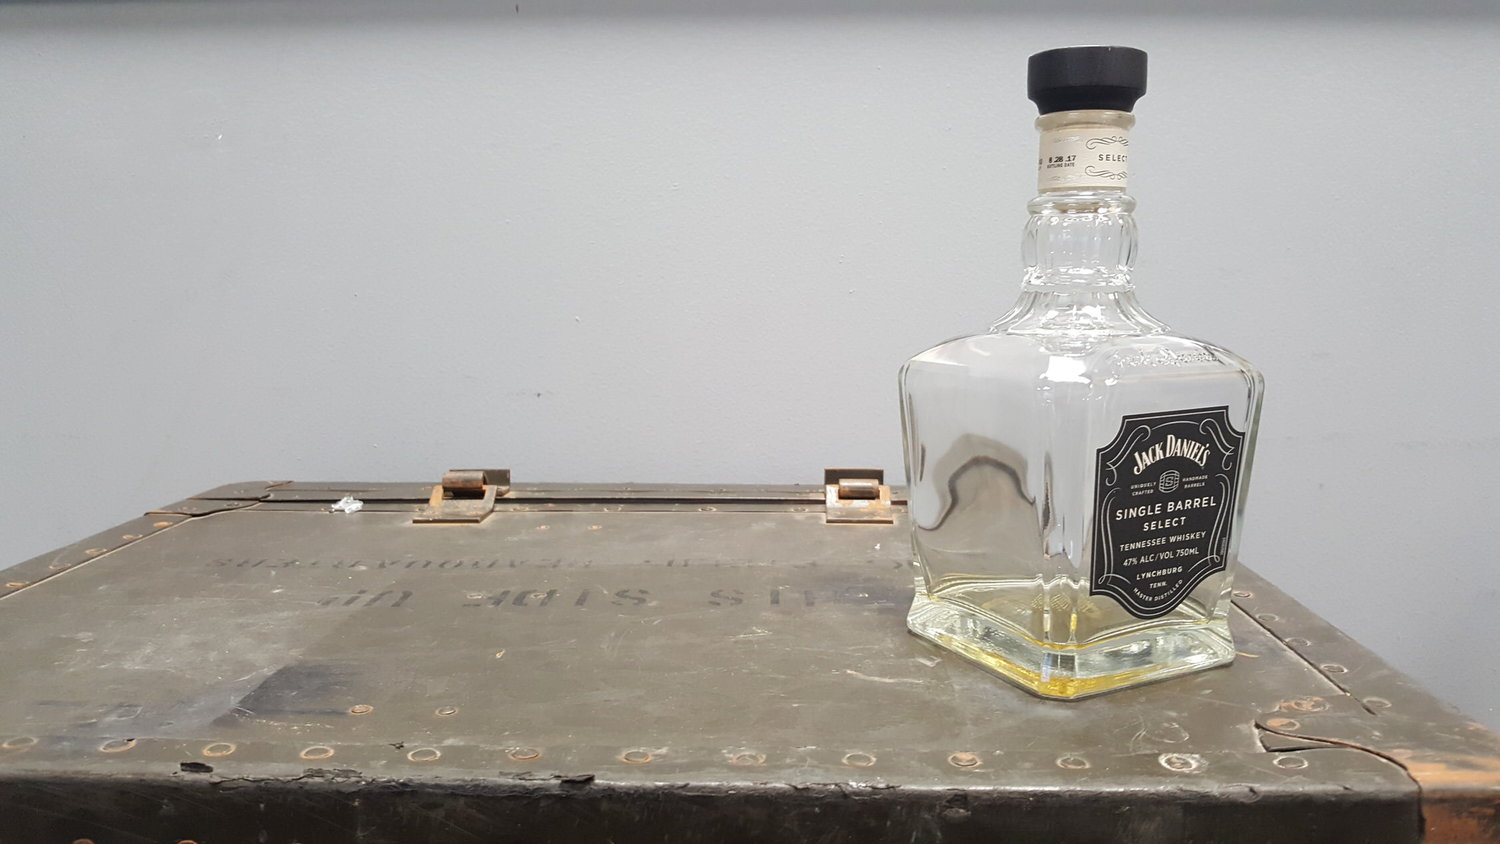 The bottle was rendered empty post the shoot